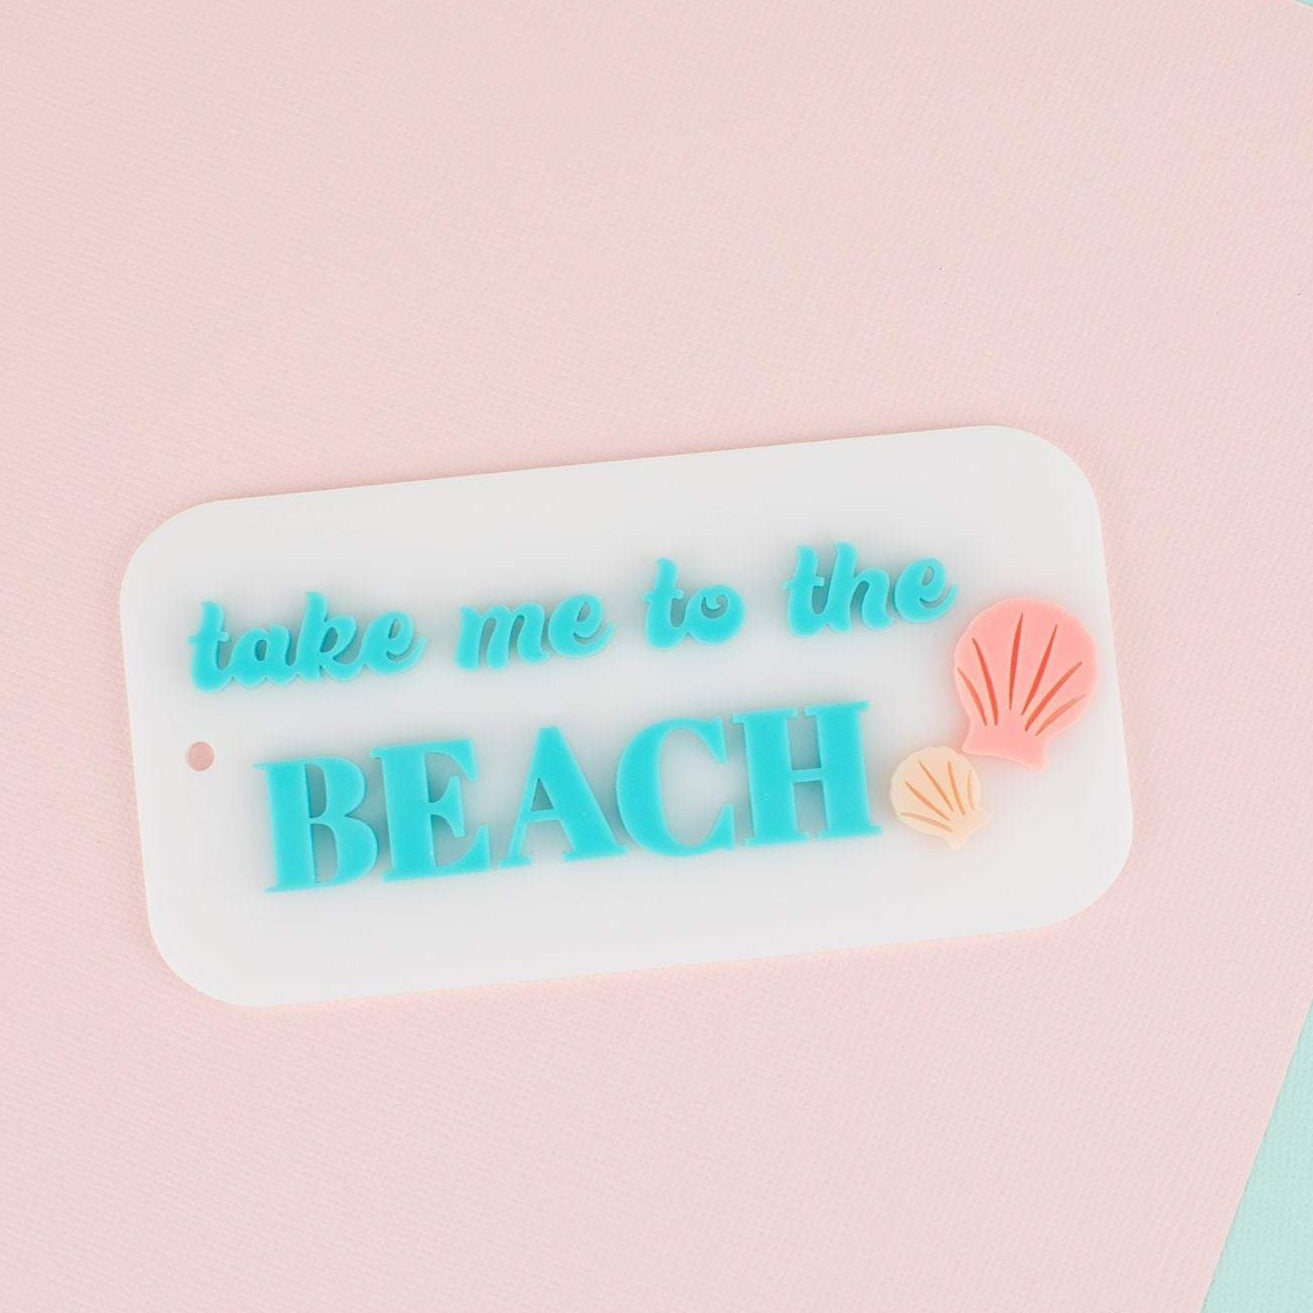 Take Me To The Beach Personalized Acrylic Tags | Hang Tag | Customized Hang Tags | Gift Tags | Summer Bag Tags | Bag Tags | Beach Tags